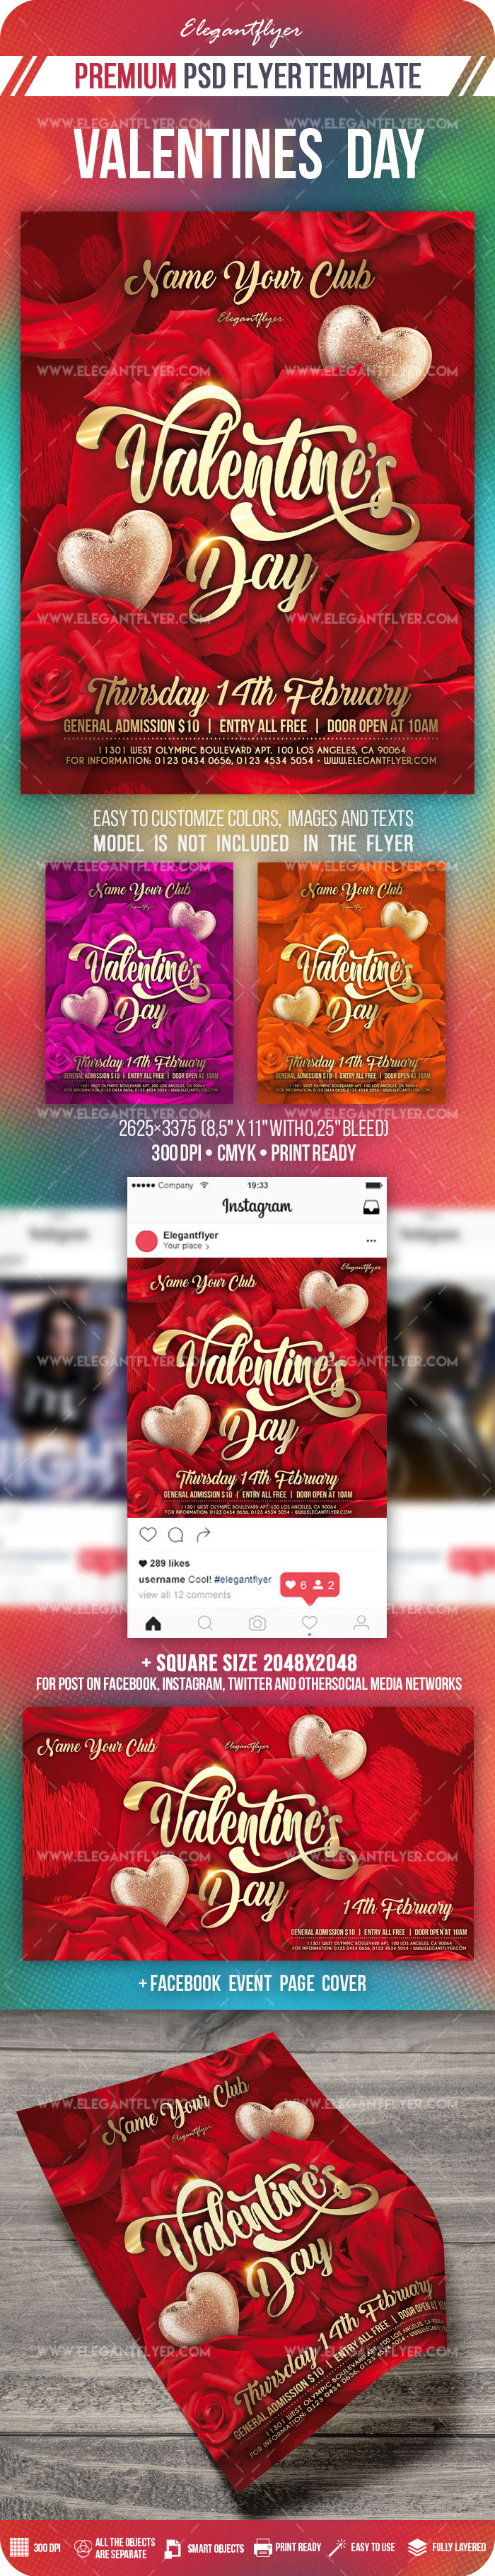 Valentines Day – Flyer Template PSD + Facebook Cover + Instagram Post